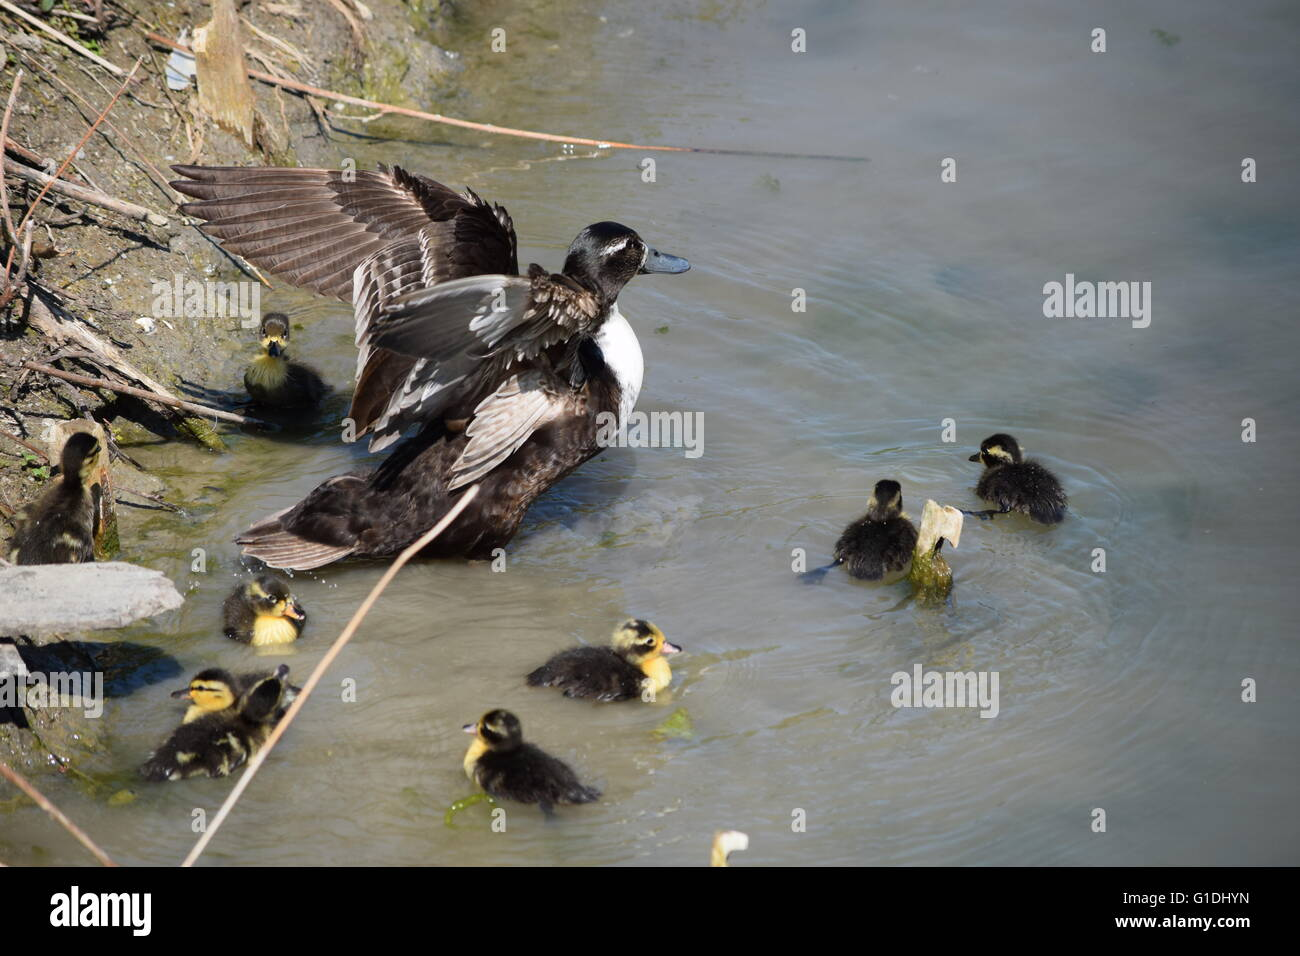 Mother duck protecting her chicks - Stock Image